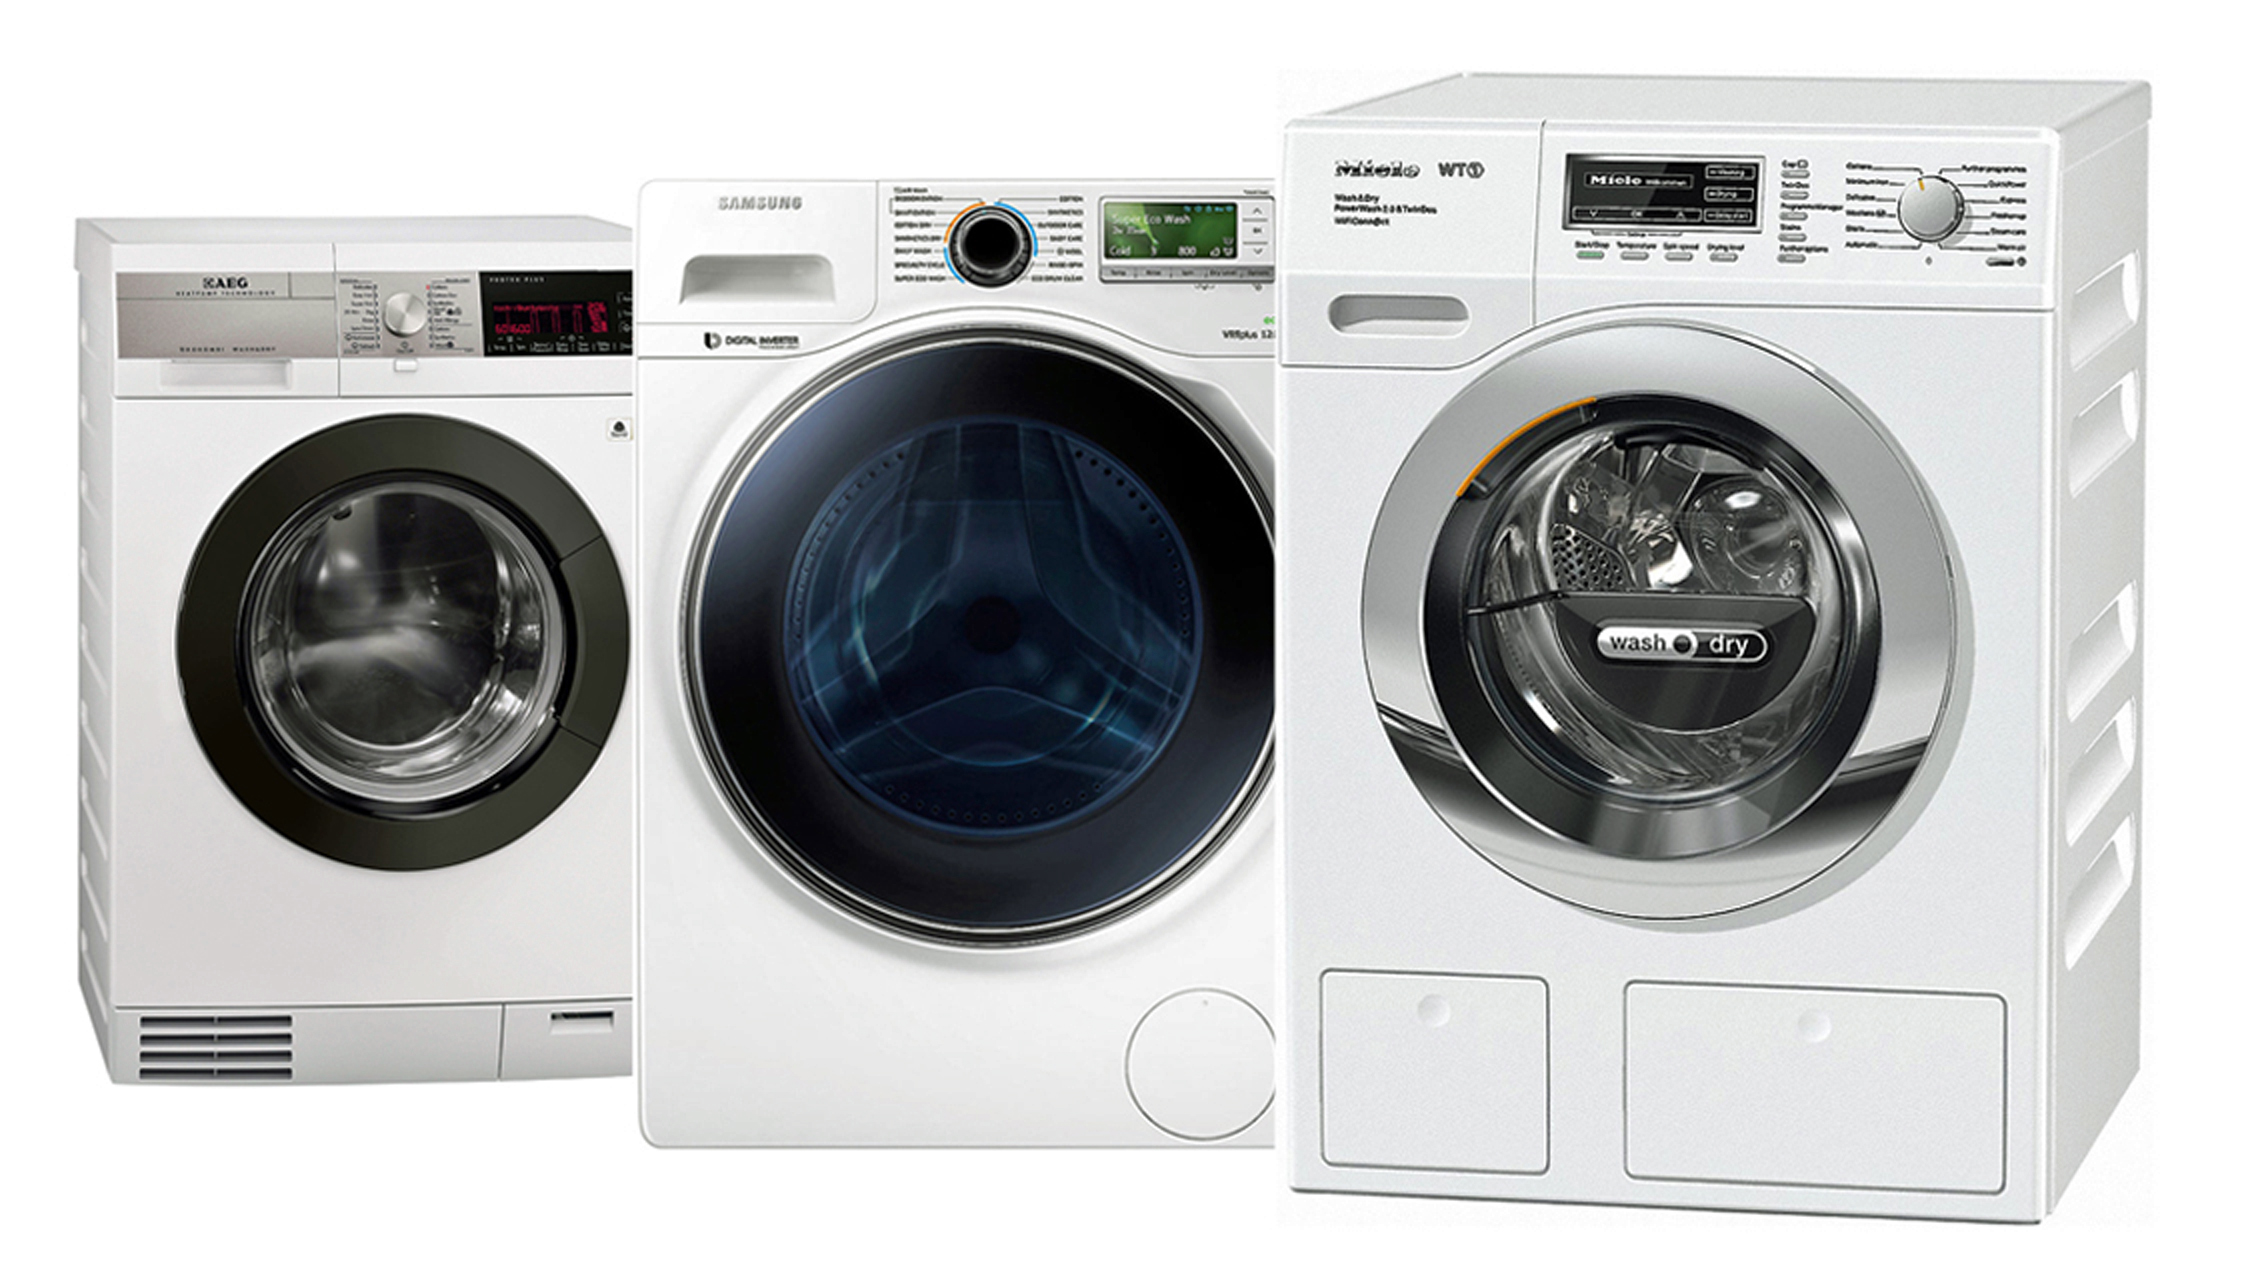 Best washer dryer 2019: the ultimate two-in-one for laundry | T3